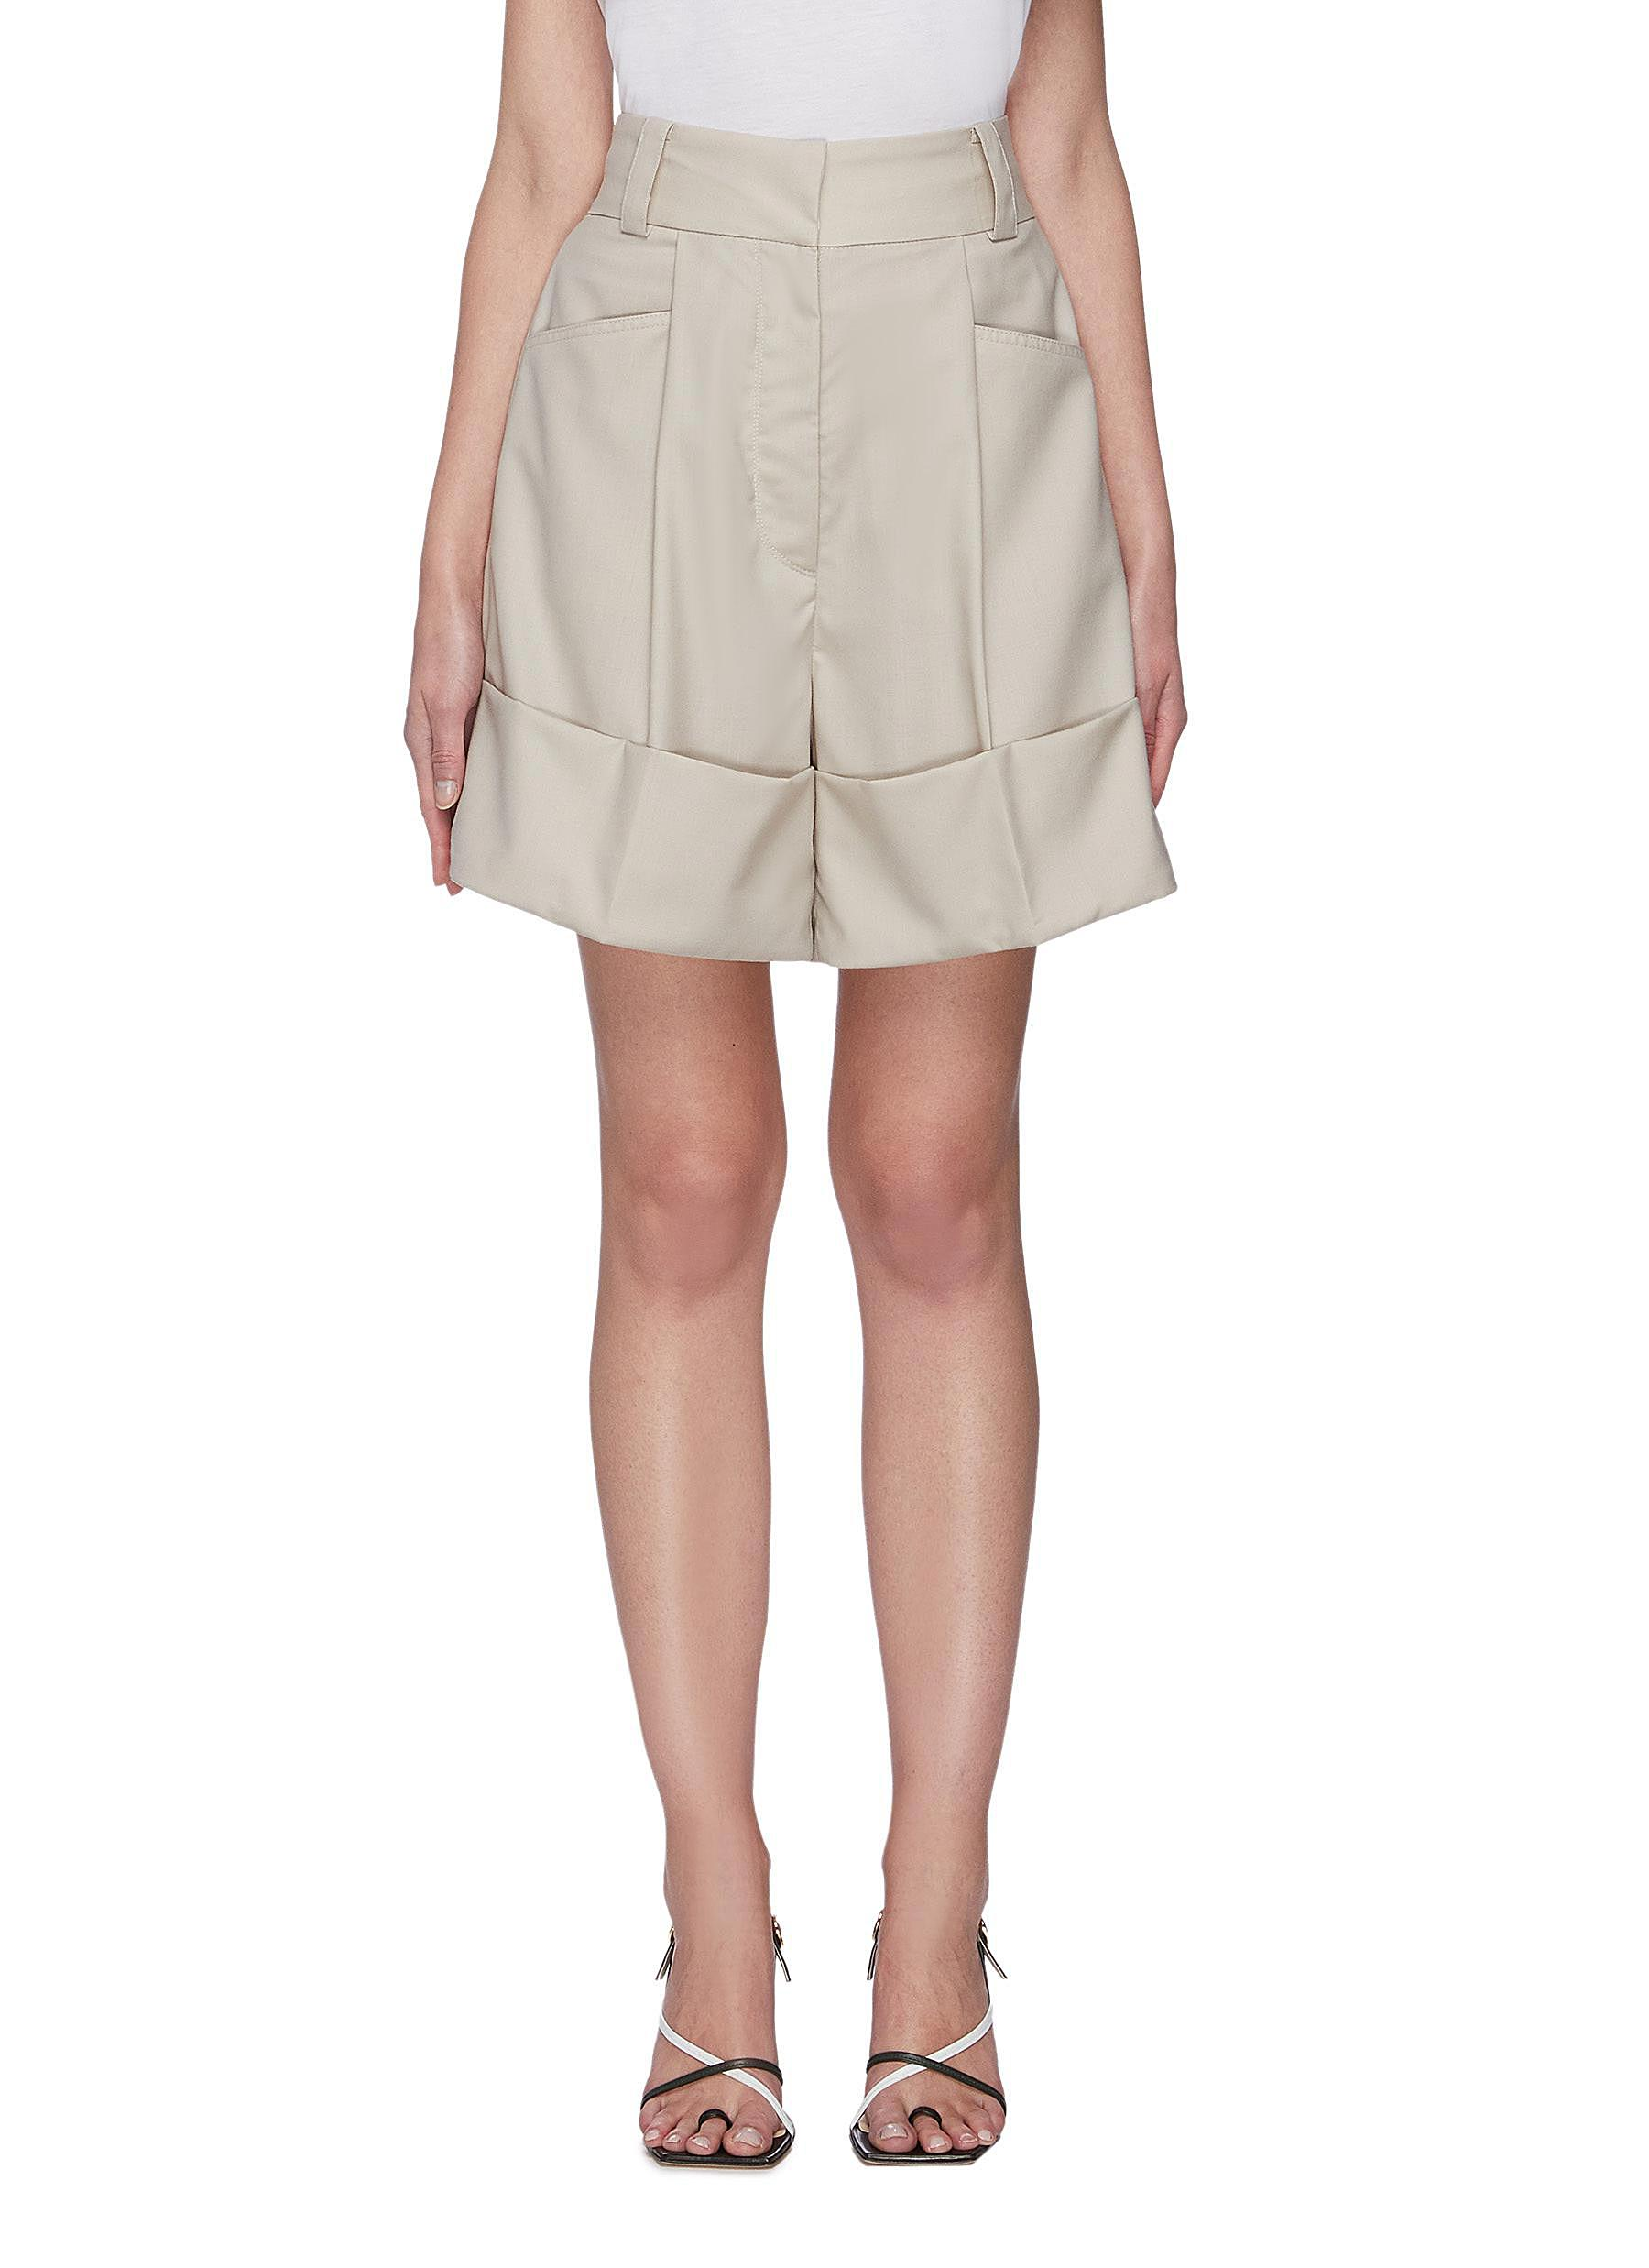 Buy Low Classic Pants & Shorts Half turn up relaxed shorts